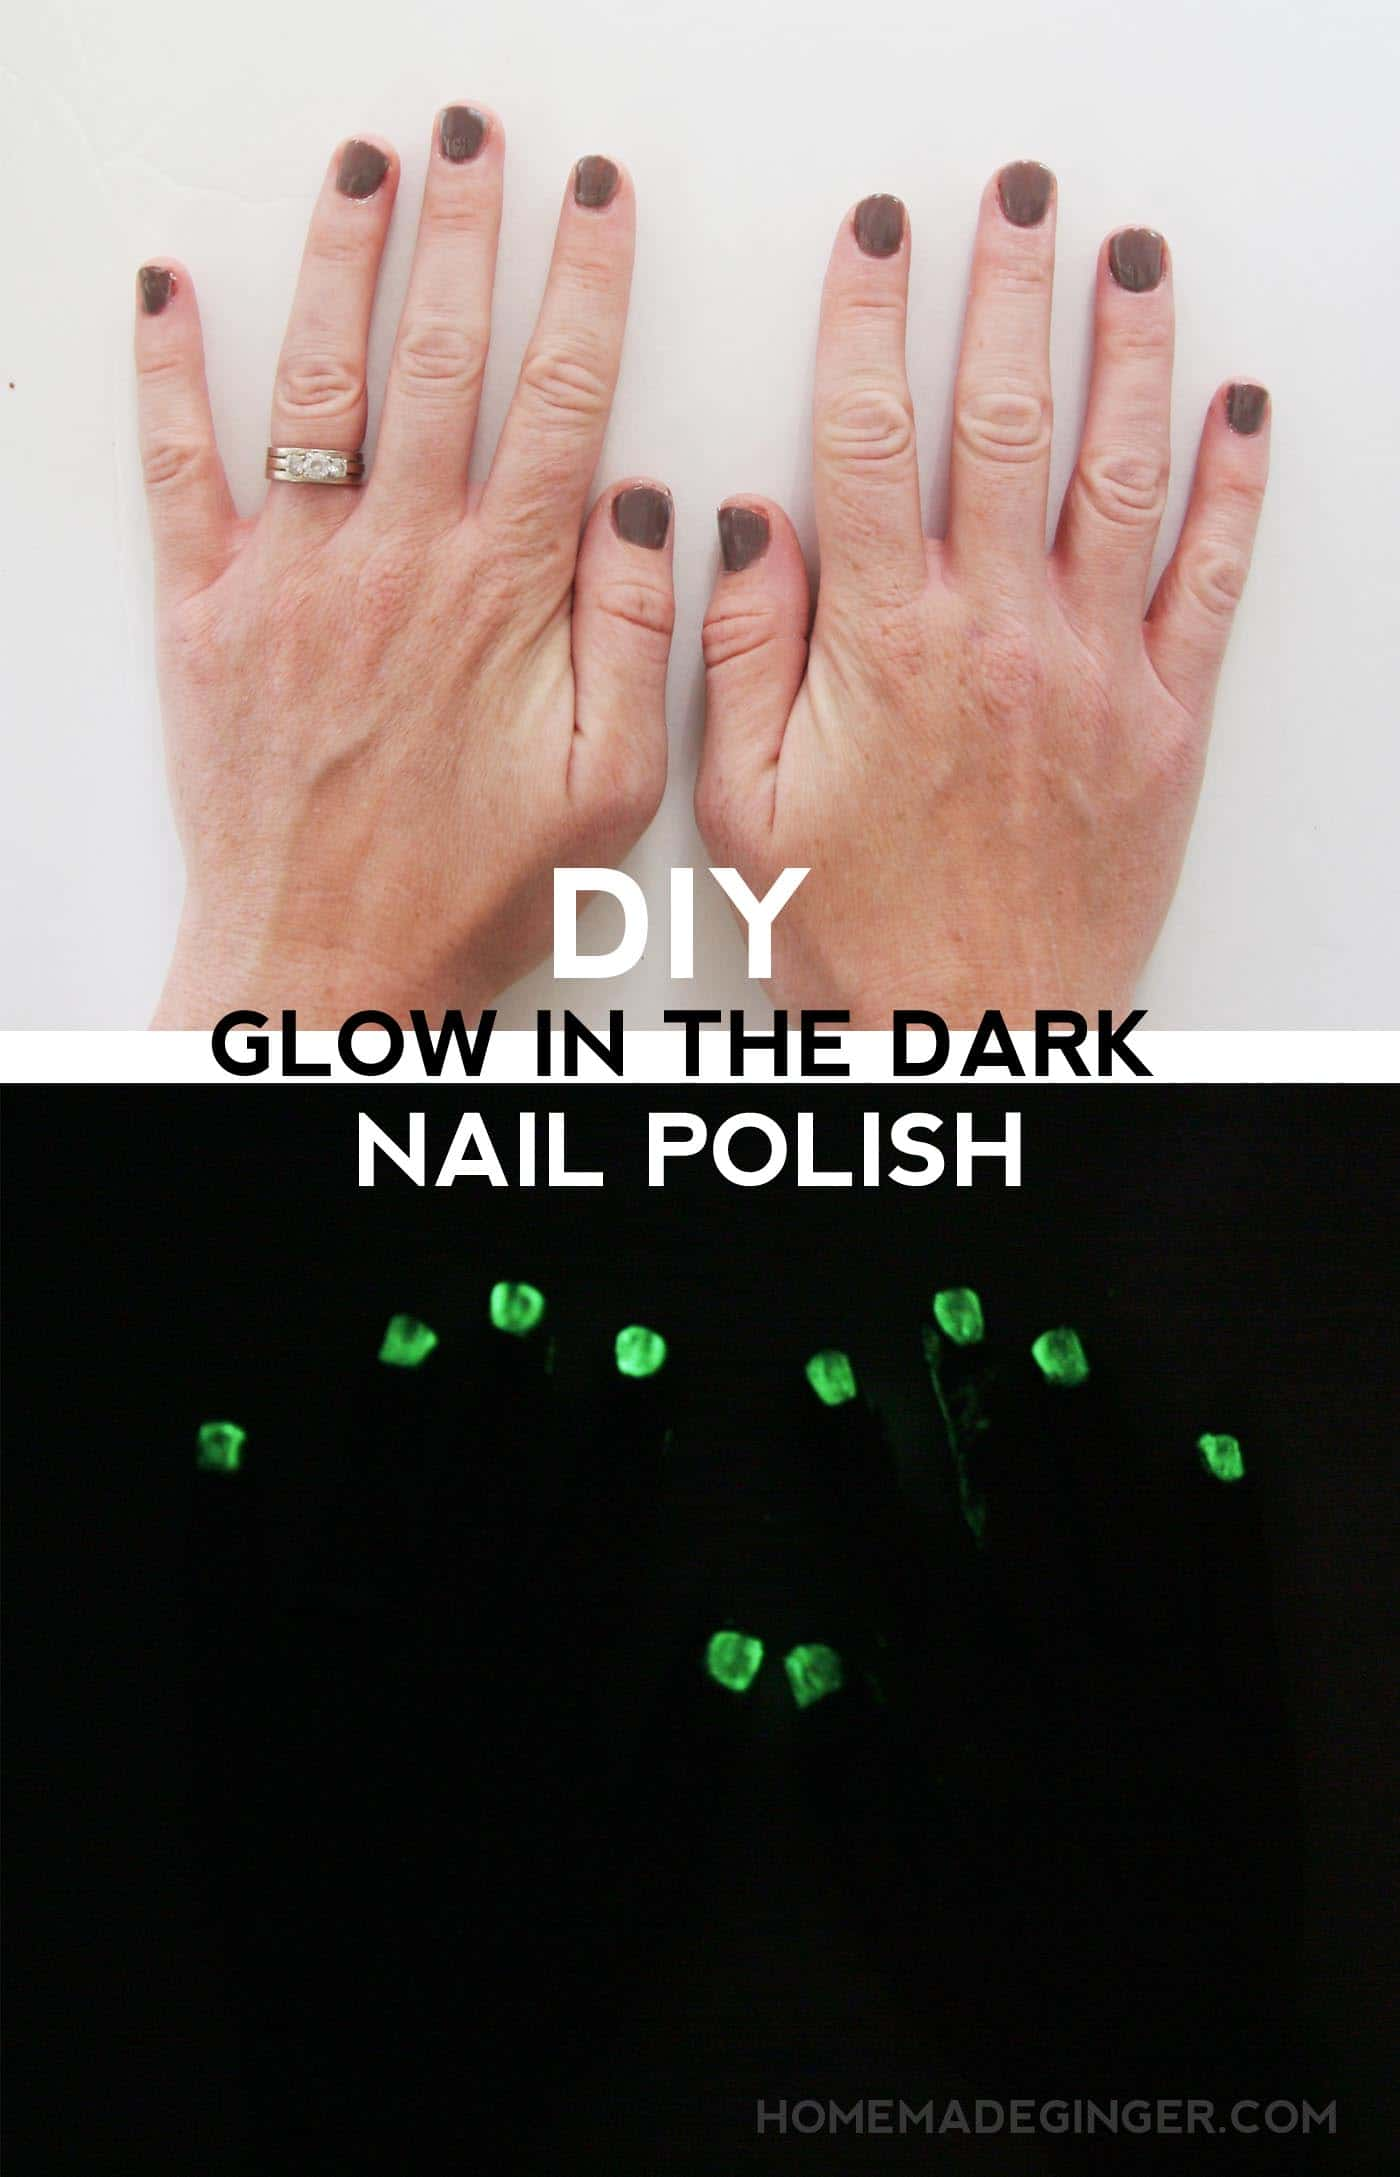 DIY Glow in the Dark Nail Polish